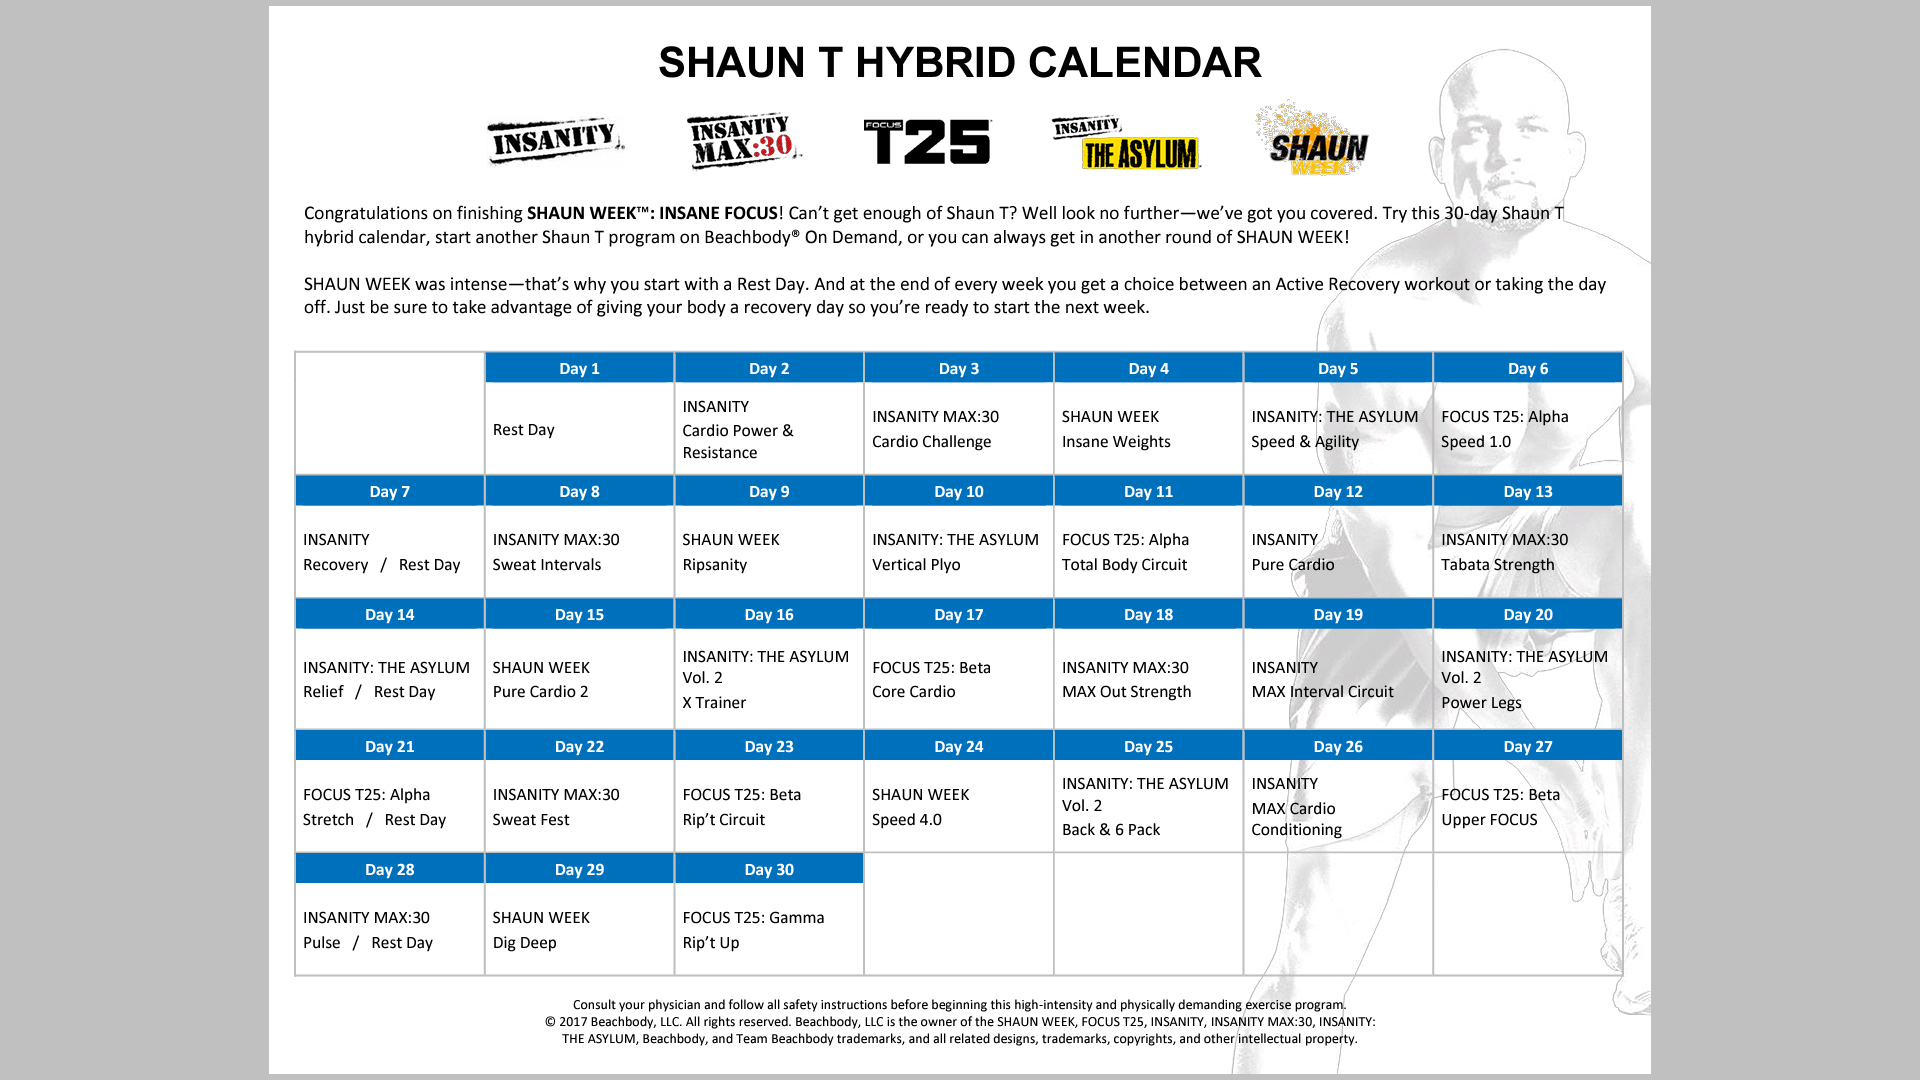 About To Finish Shaun Week. Going To Follow The Hybrid for Insanity Max 30 Hybrid